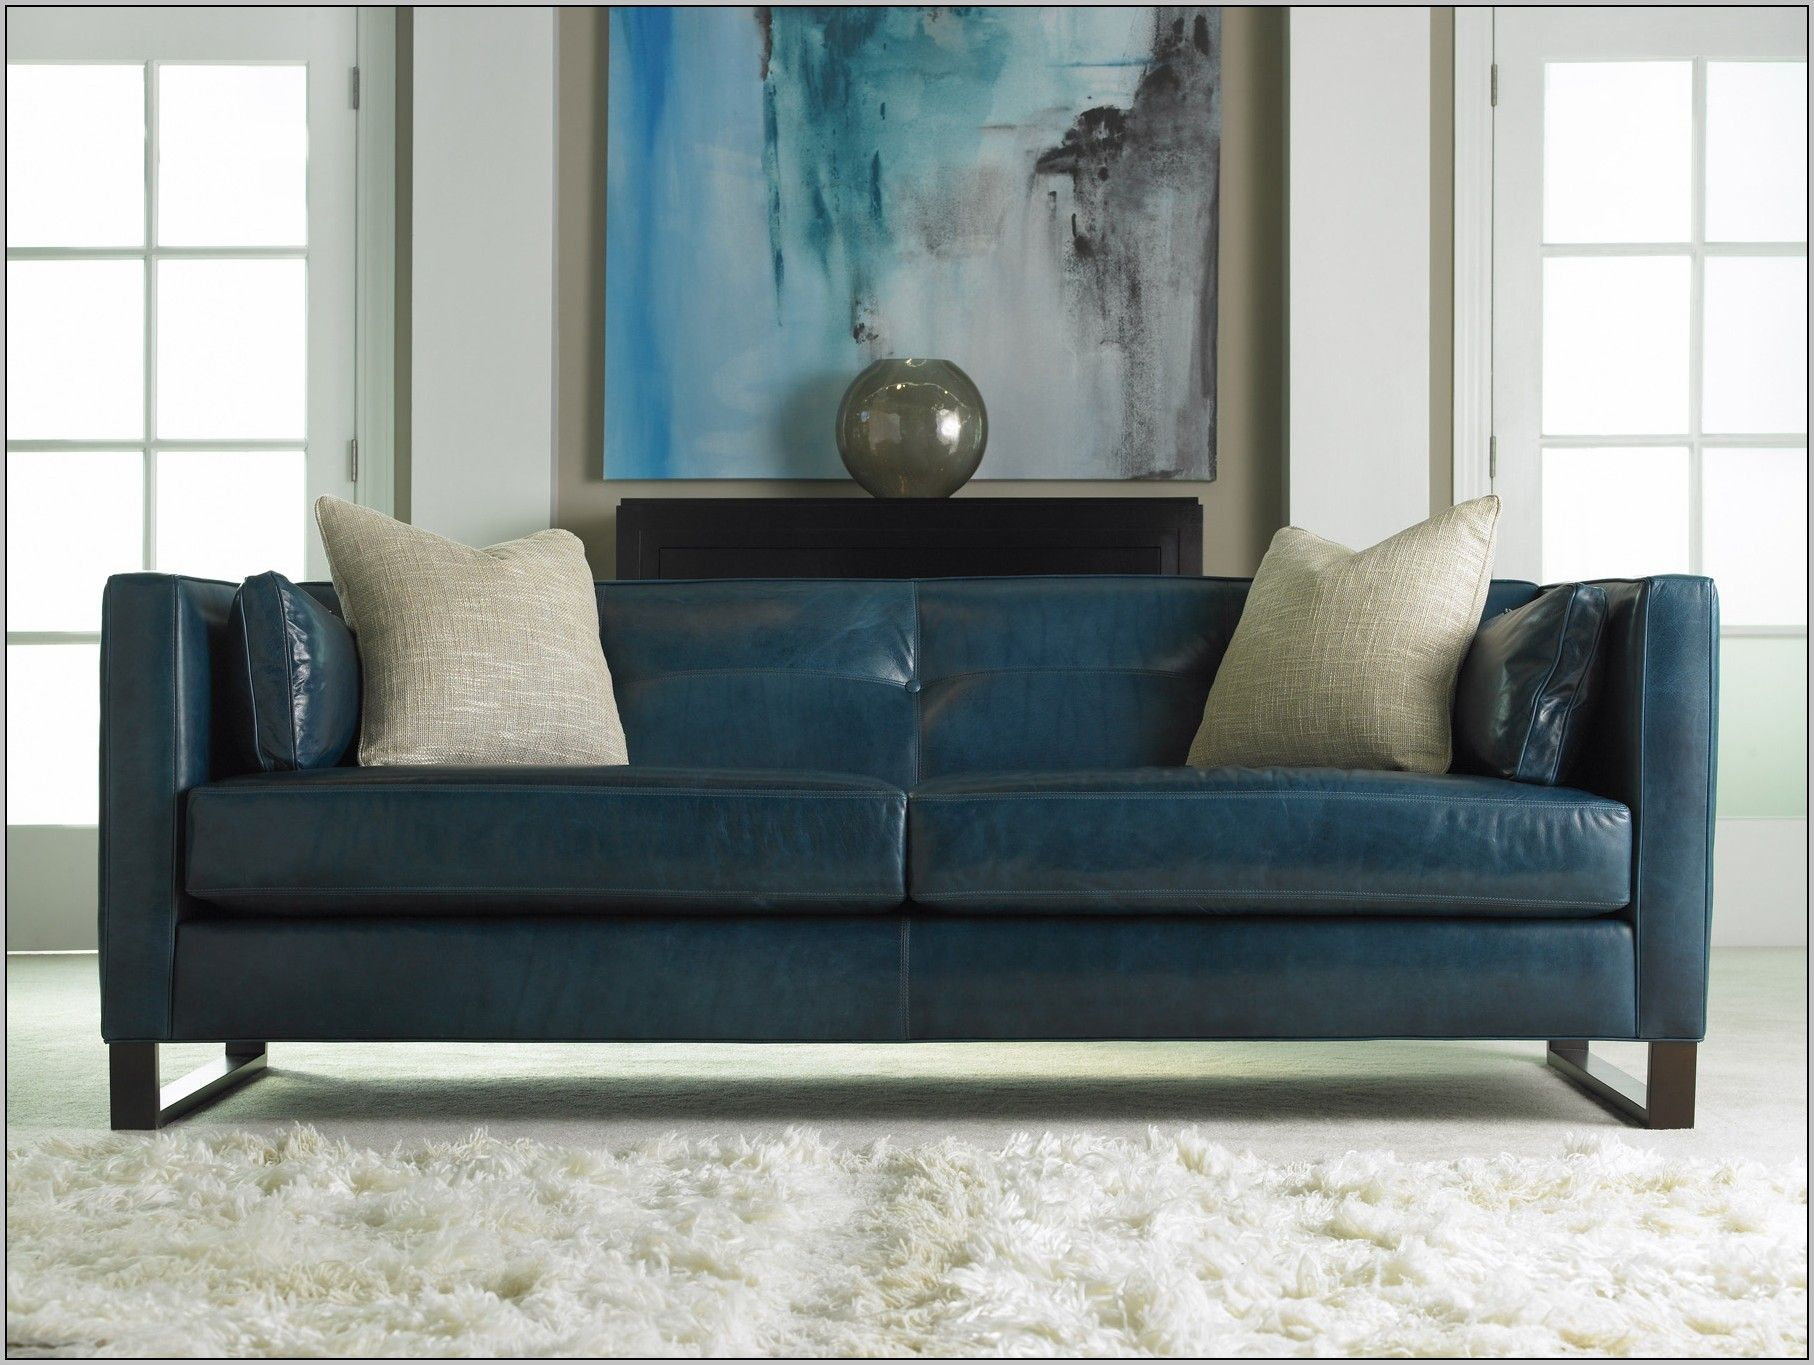 Blue Leather Sofa Ebay Blue Leather Sofa Blue Couch Living Room Small Leather Sofa